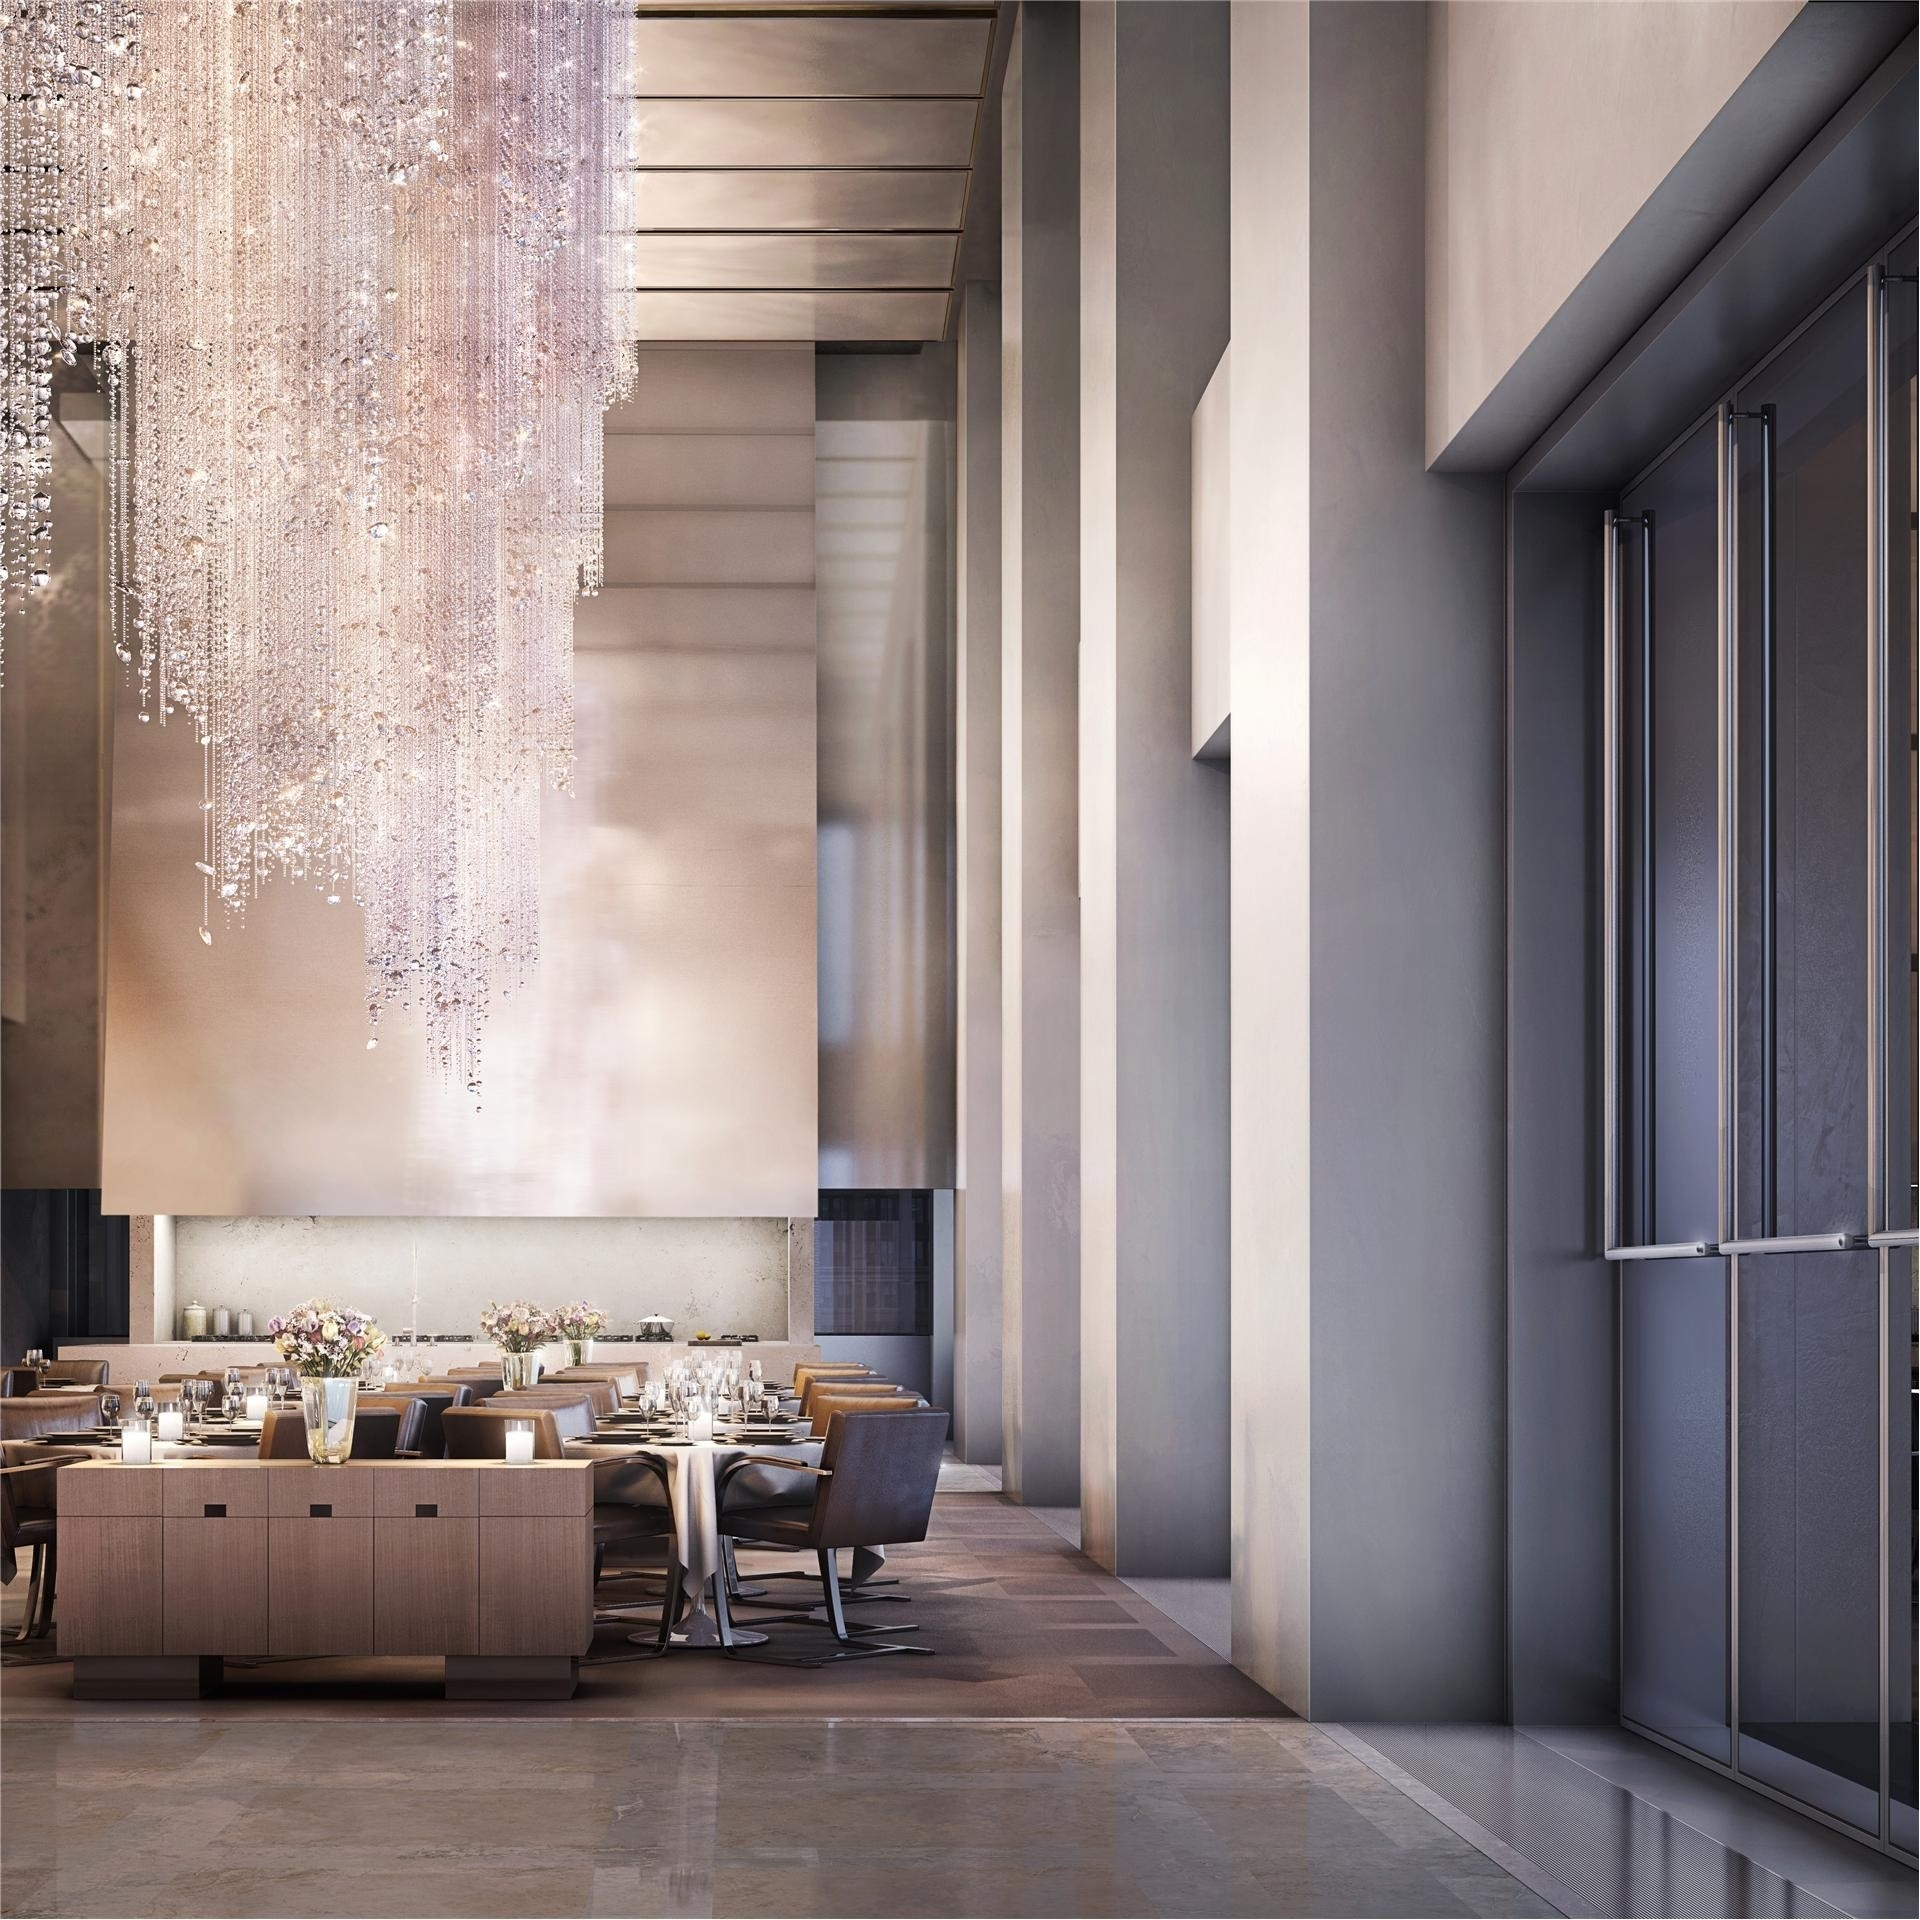 20. Condominiums for Sale at 432 PARK AVE , 29E Midtown East, New York, NY 10022